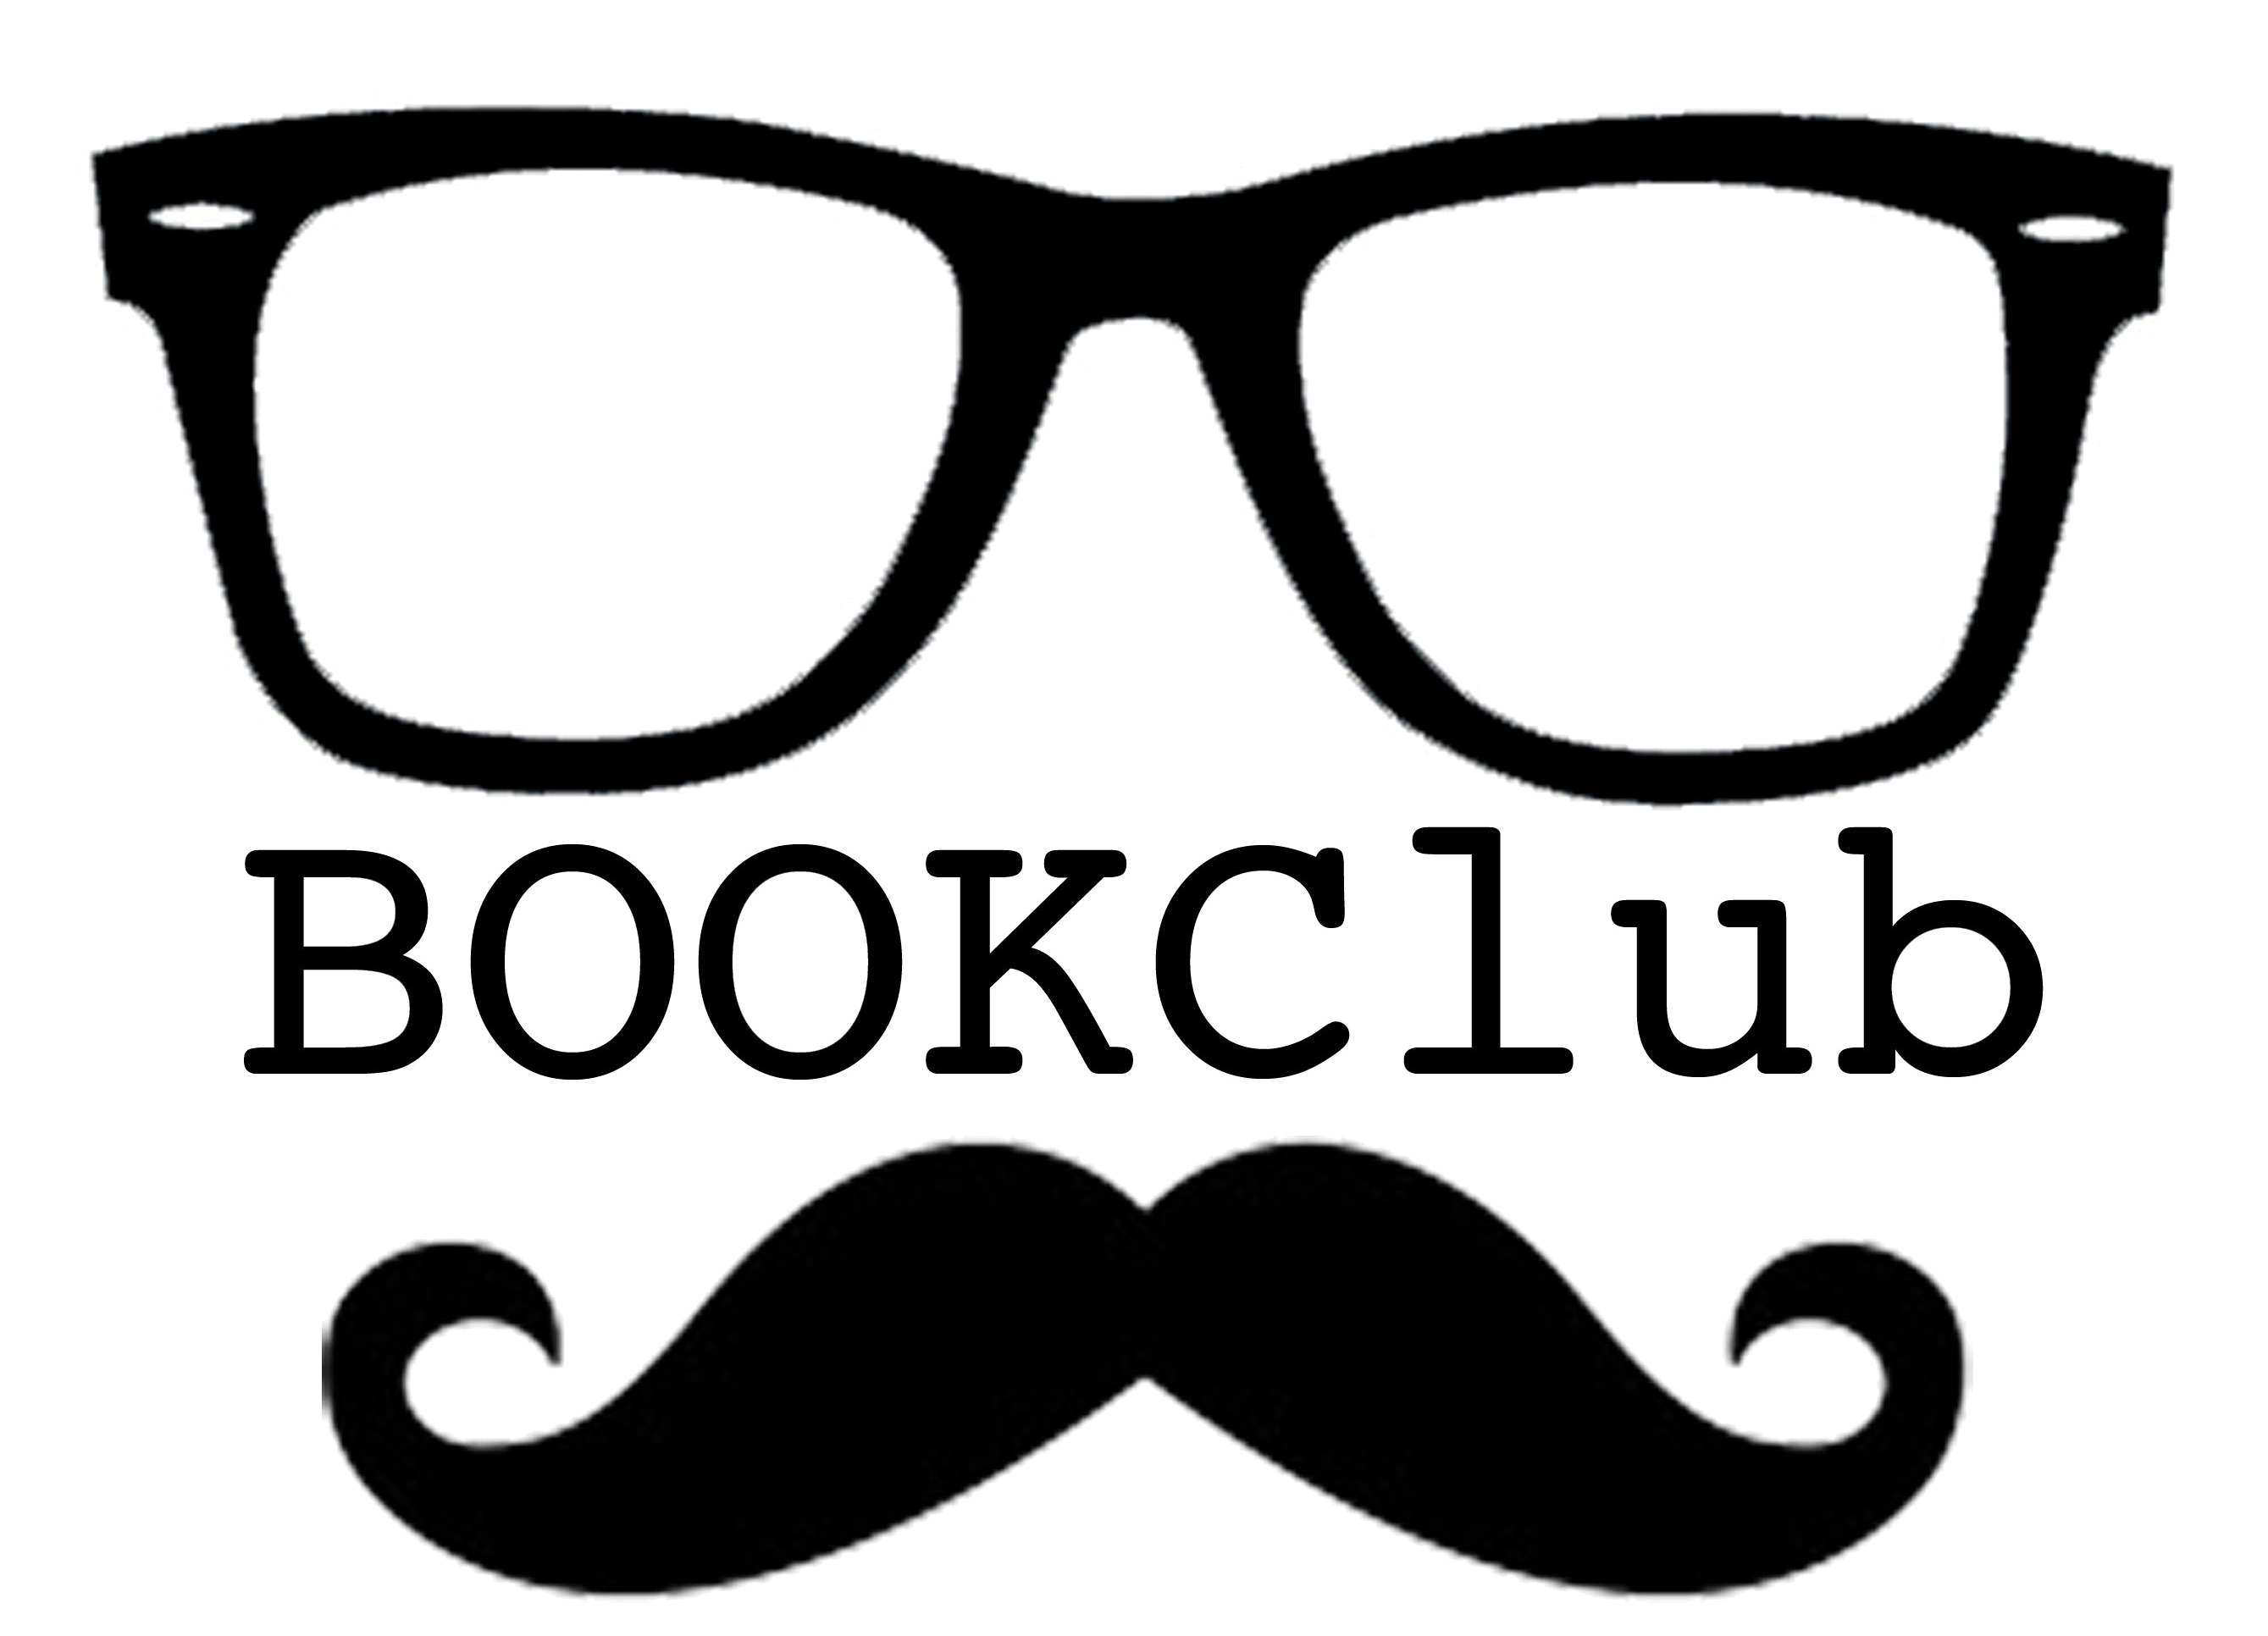 Book clubs clipart freeuse library 28+ Collection of Book Club Clipart Black And White | High quality ... freeuse library